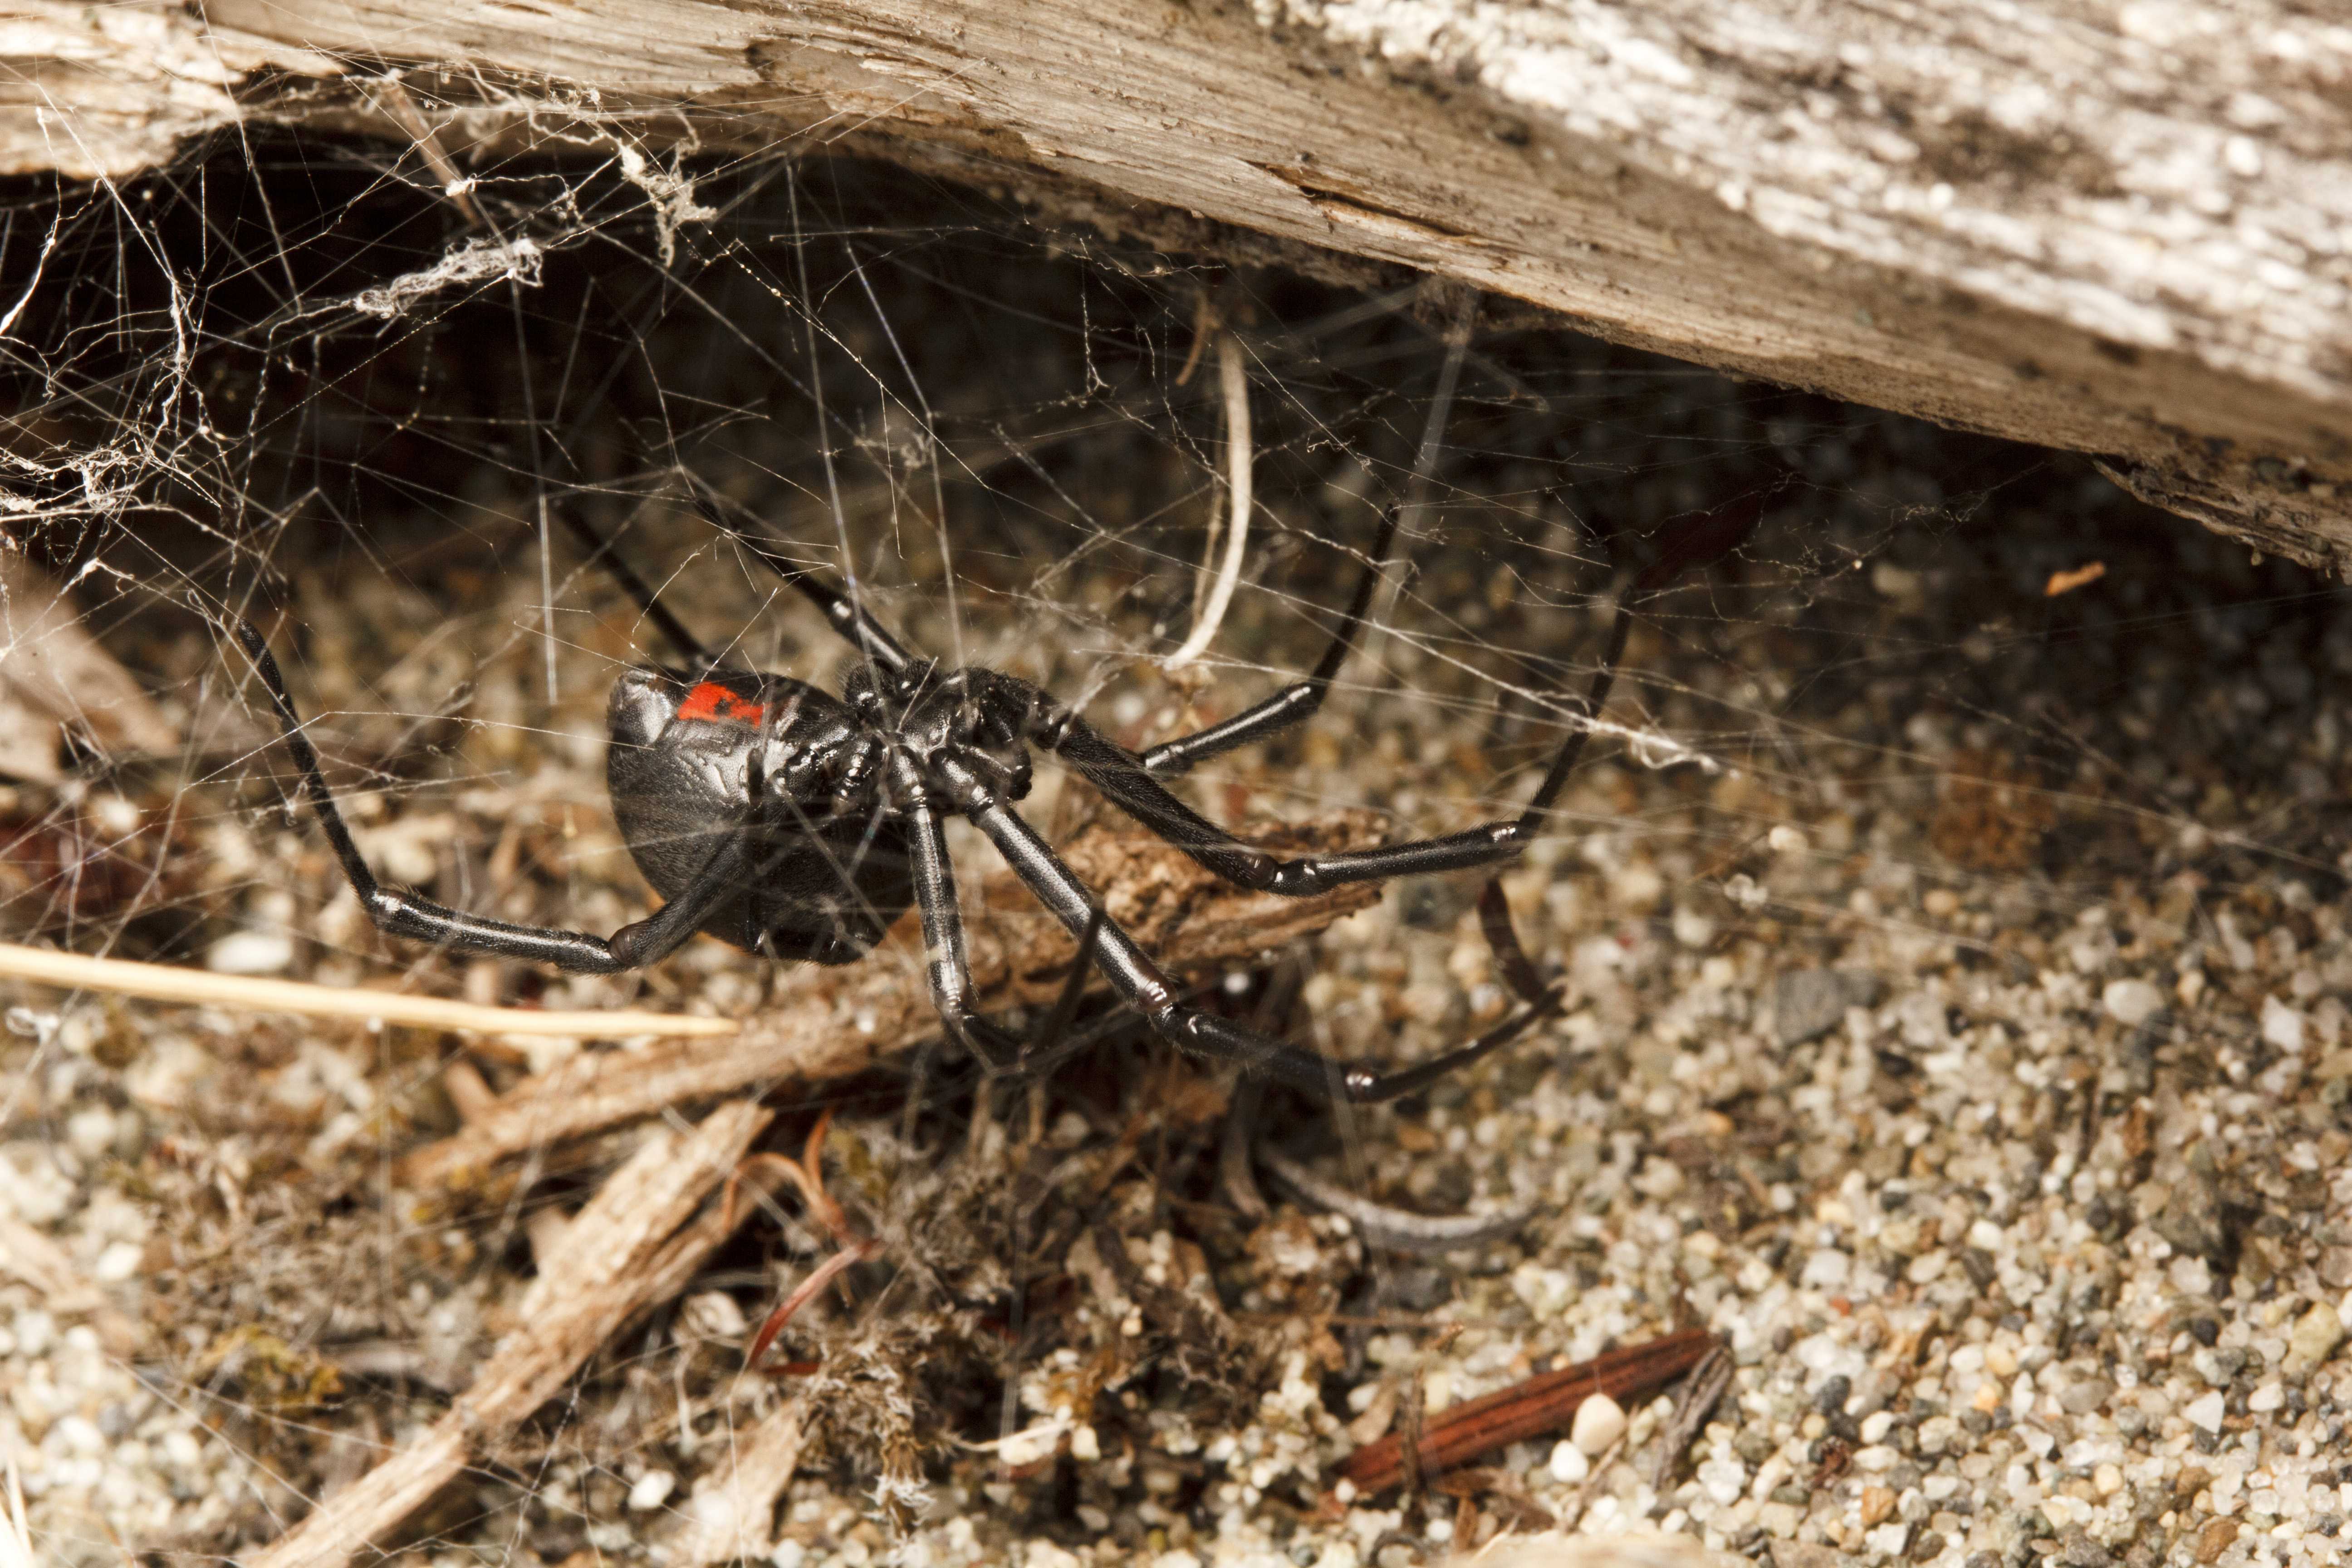 A Western Black Widow Latrodectus Hesperus Hanging From Her Tangle Web Under Log At Island View Beach On Vancouver